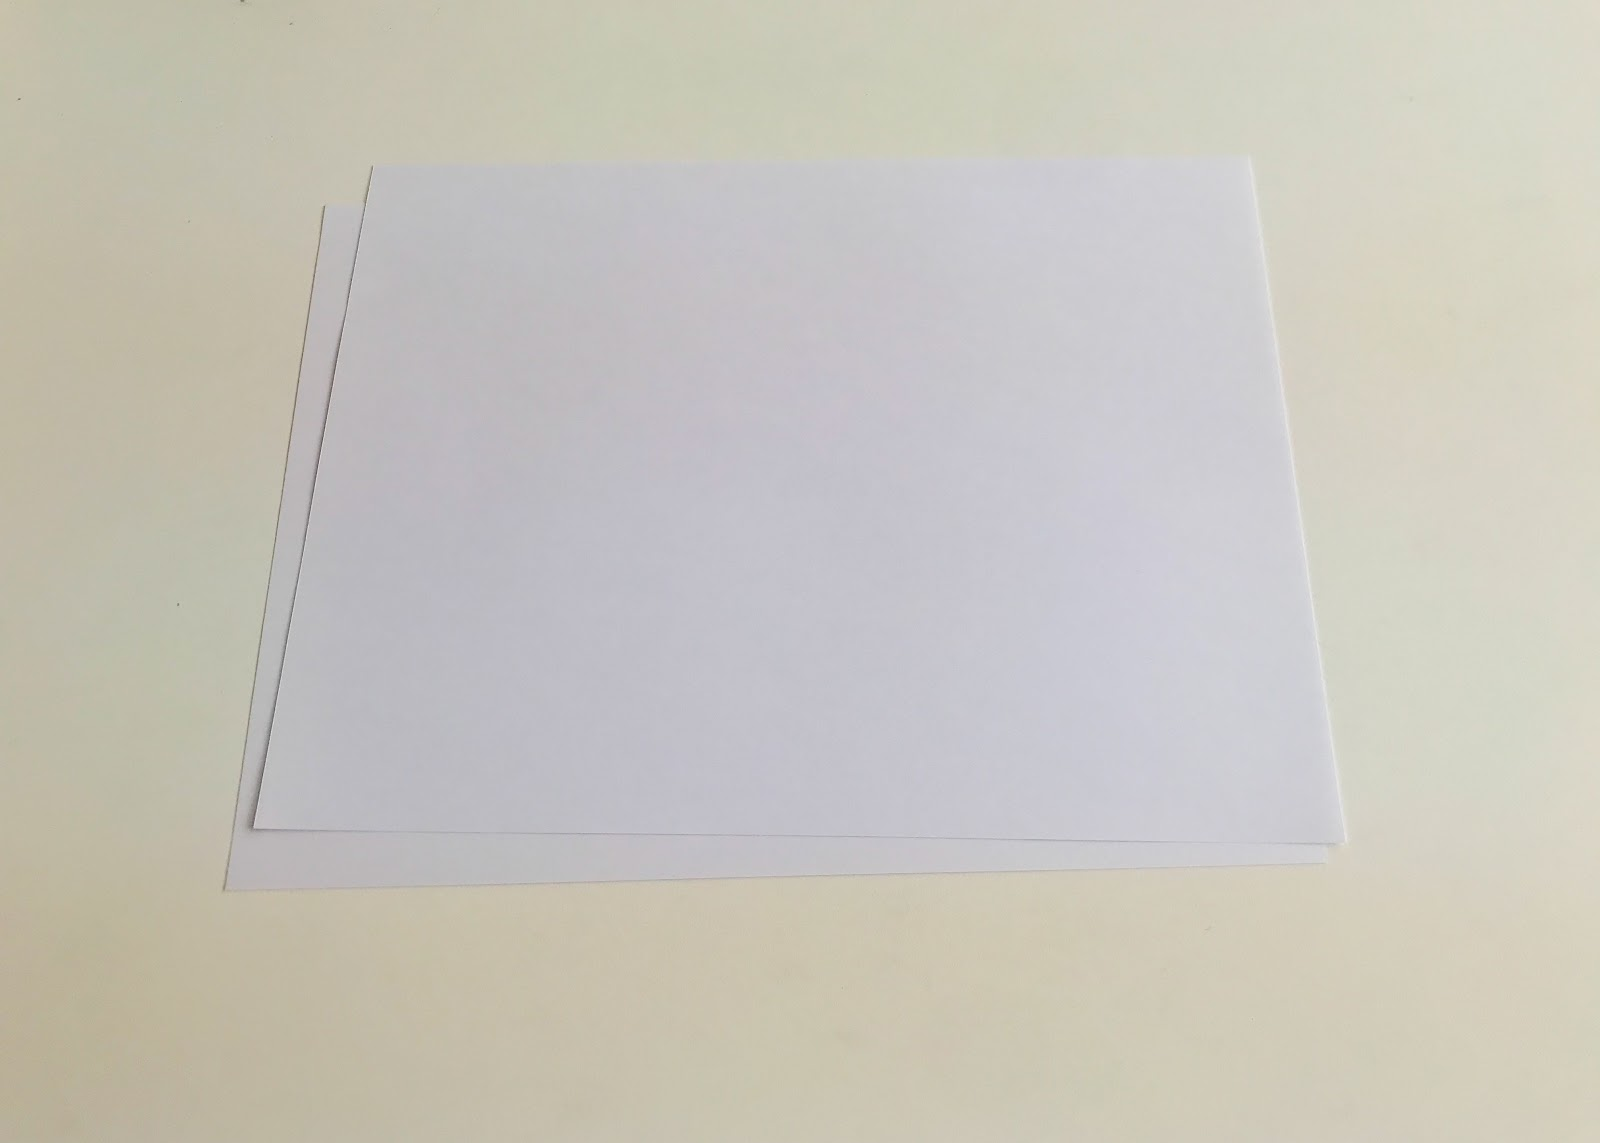 Image of two flat pieces of paper.